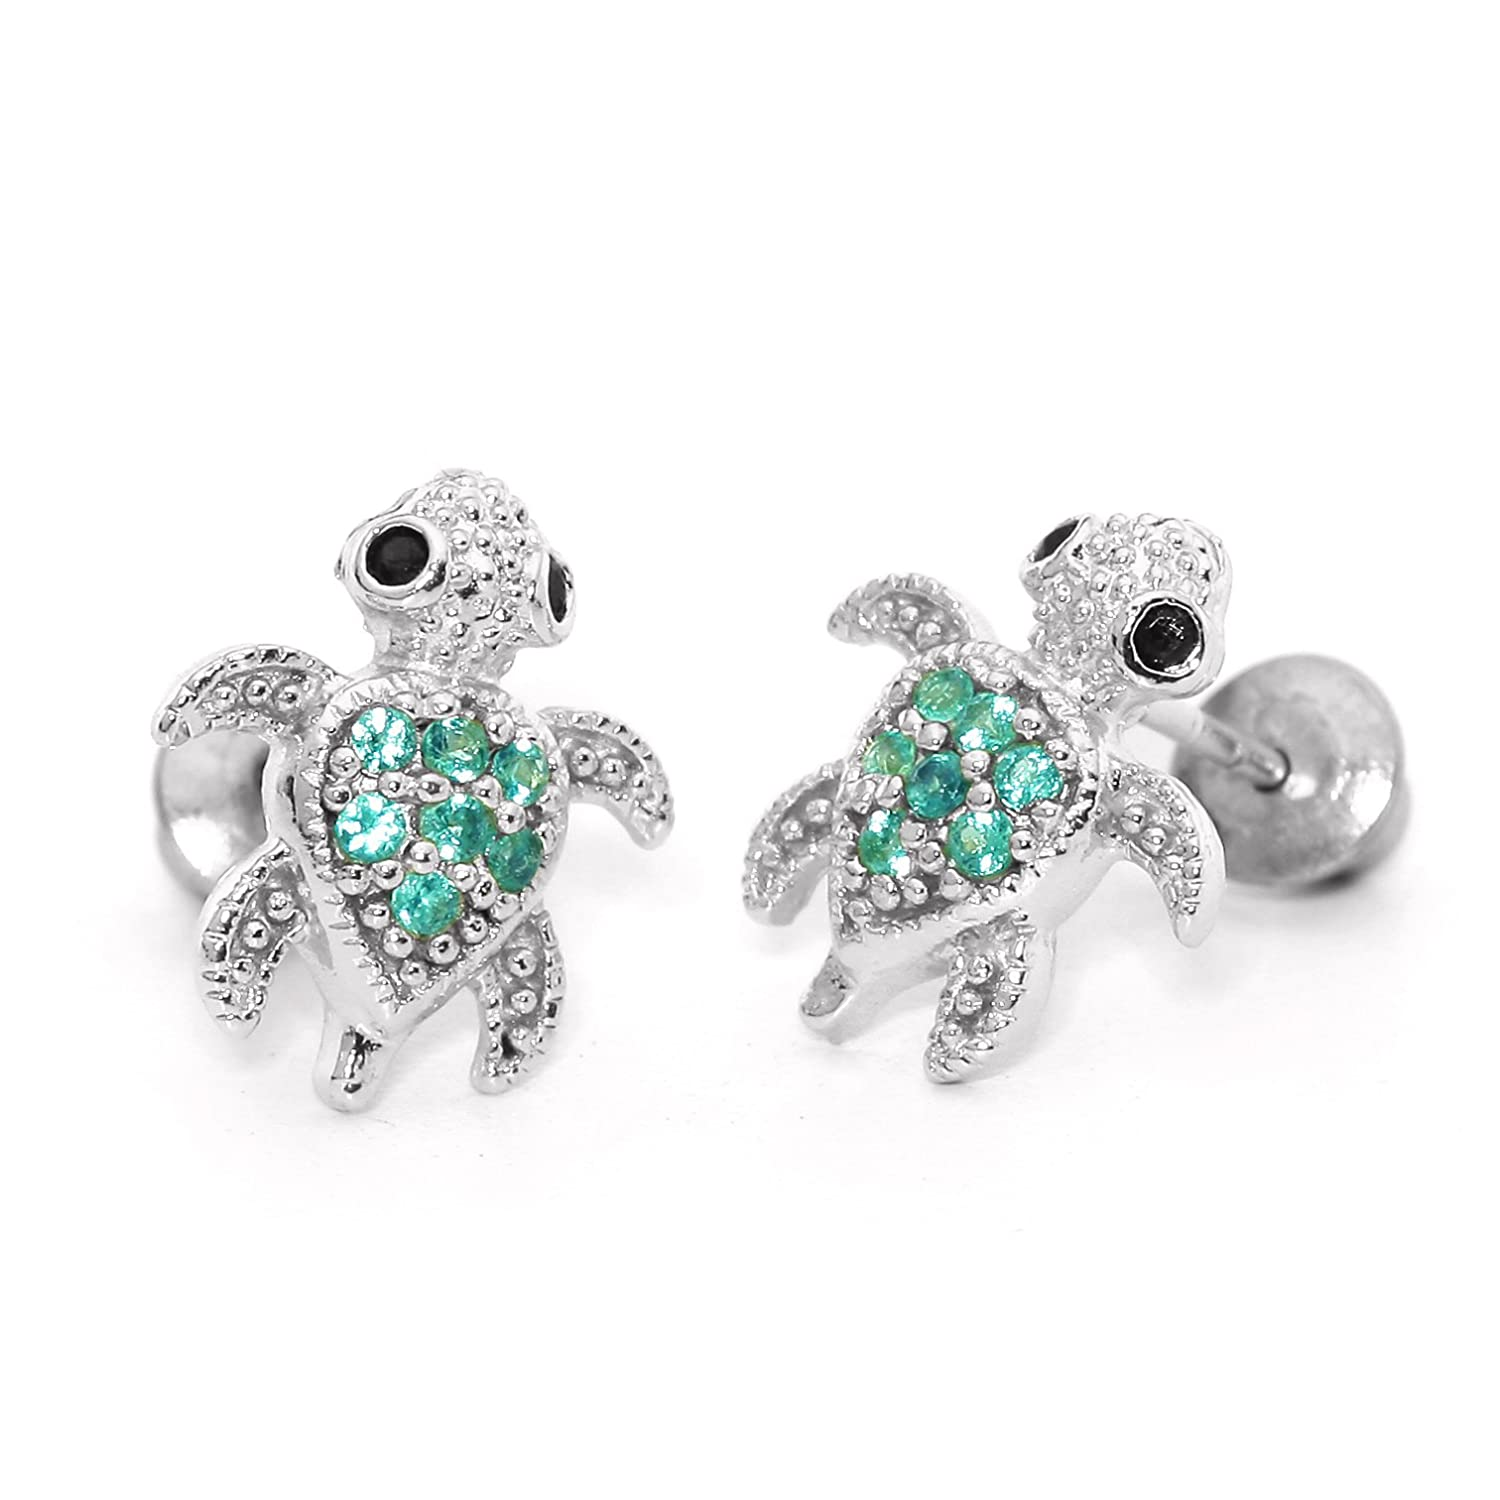 earrings silver unisex cz earring jewelry jgood bling ct sterling jewellery stud